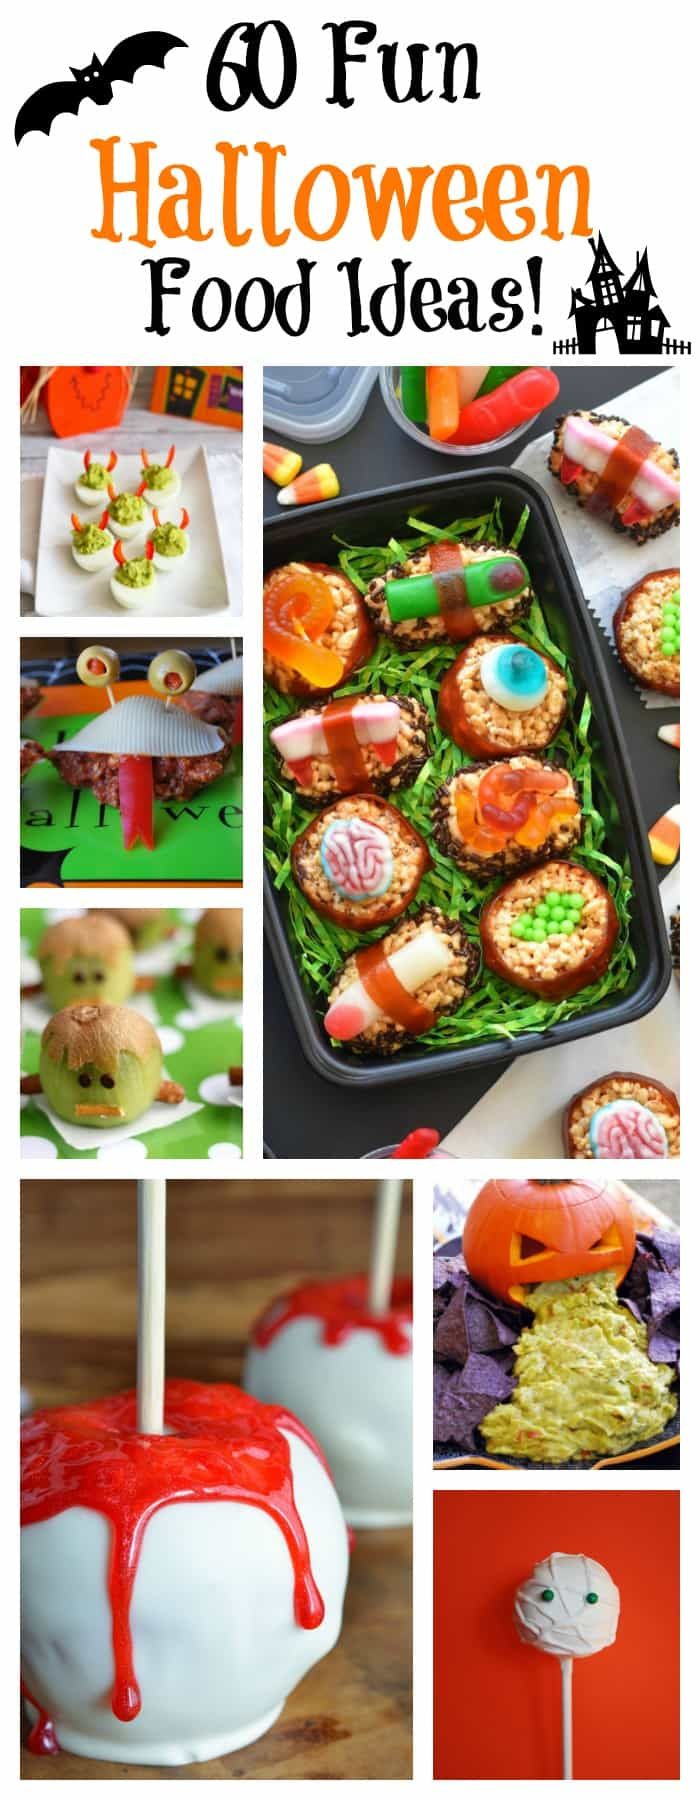 60 Fun Halloween Party Planning and Food Ideas to inspire your next party! #halloween #halloweenrecipes #funhalloweenfood #halloweenfood via @Ameecooks